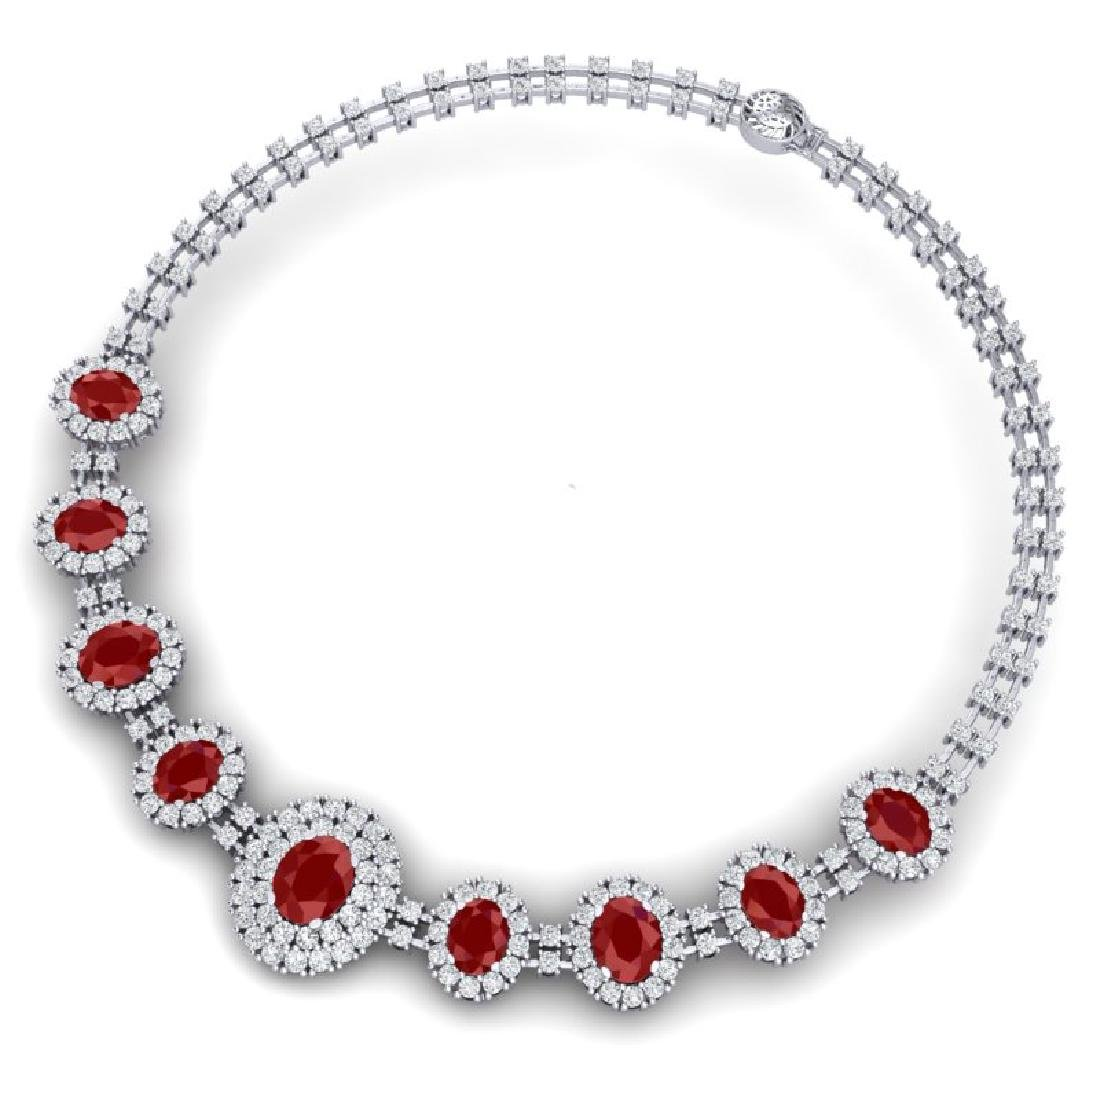 45.69 CTW Royalty Ruby & VS Diamond Necklace 18K White - 3